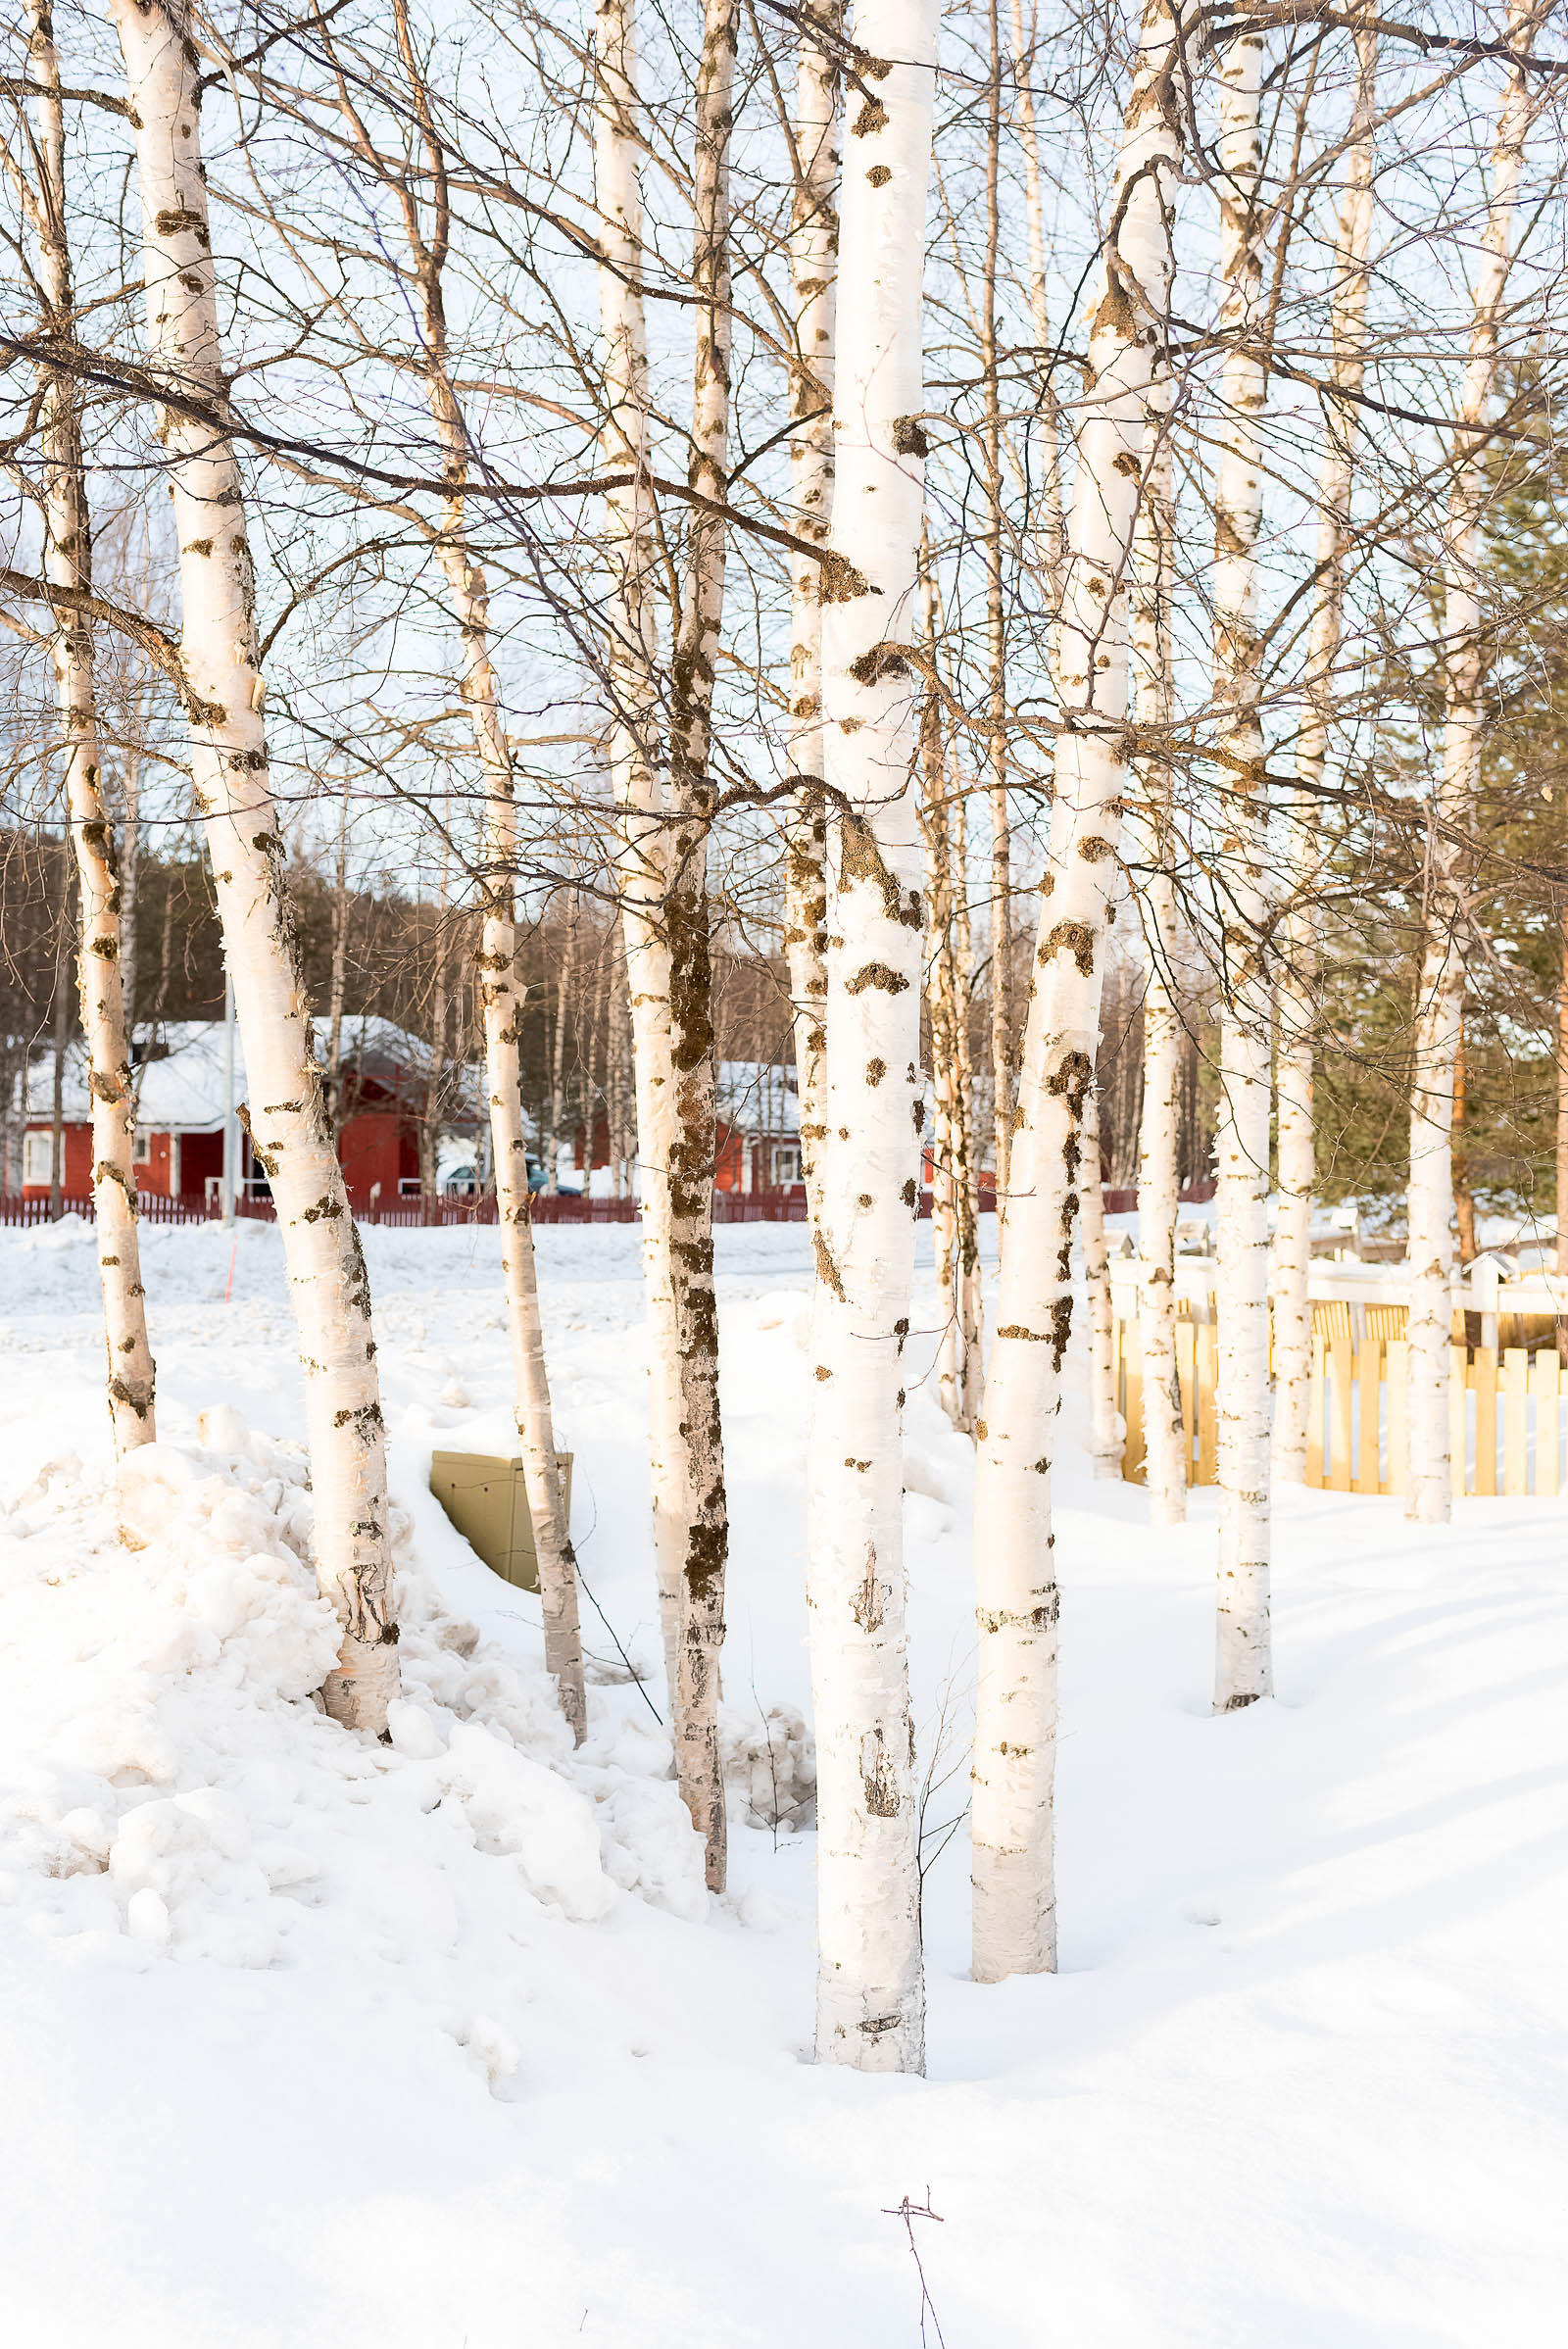 Finland 5 days in arctic lapland sed bona and has a lapland safari office right in the hotel so you can outfit yourself in snowsuits skis or whatever else youll need before heading out solutioingenieria Gallery